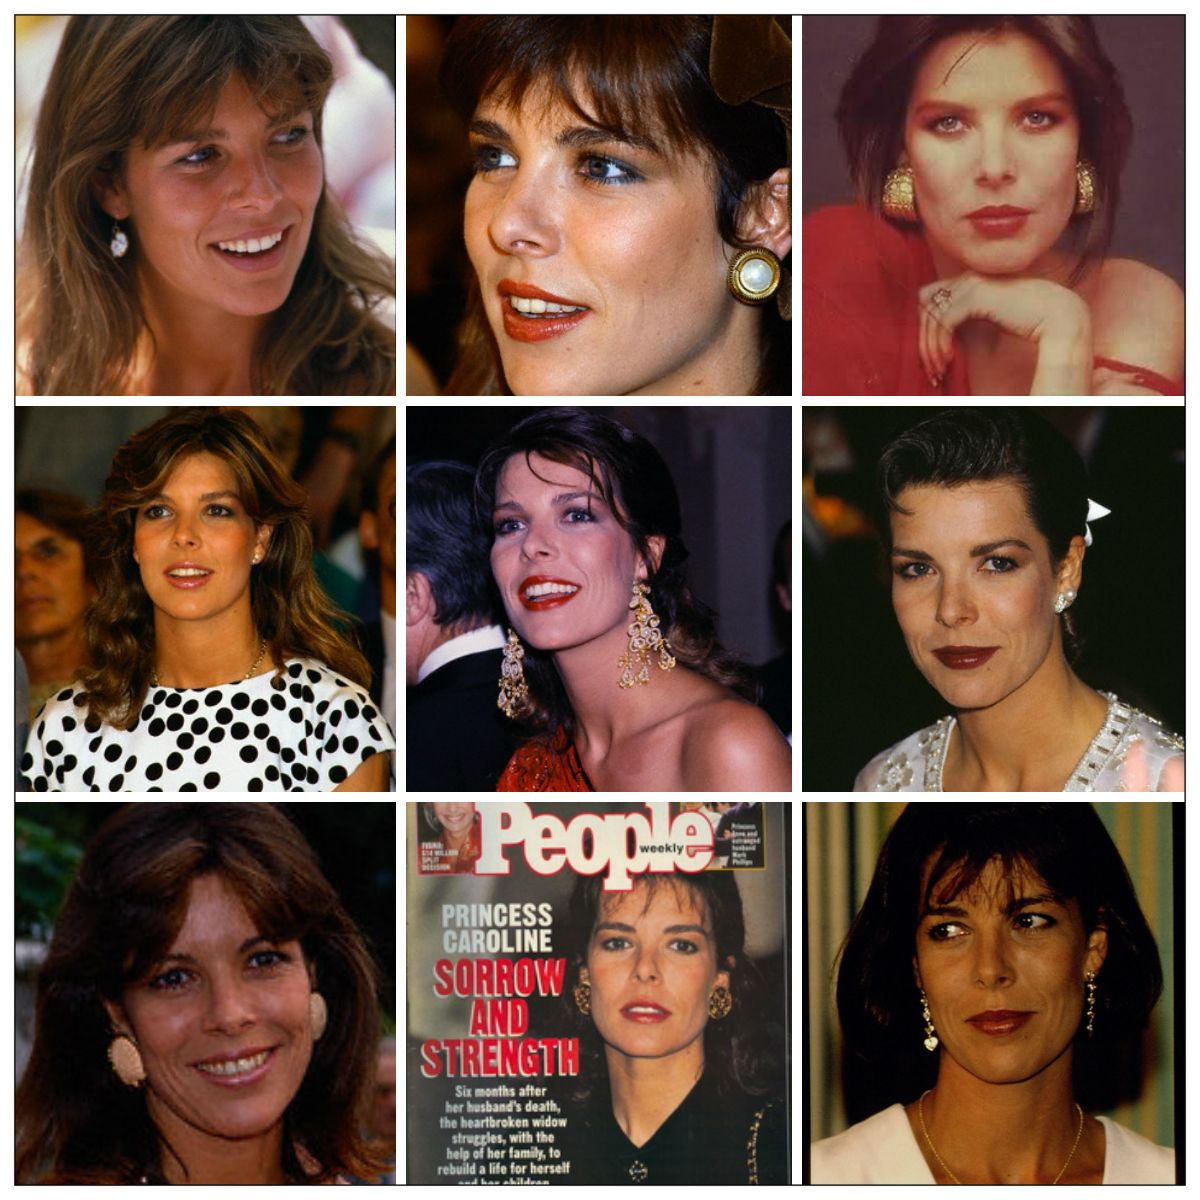 R4R Photo Spotlight: Princess Caroline's Life Year-by-Year 1984-1992  With each passing year she gets even more gorgeous!